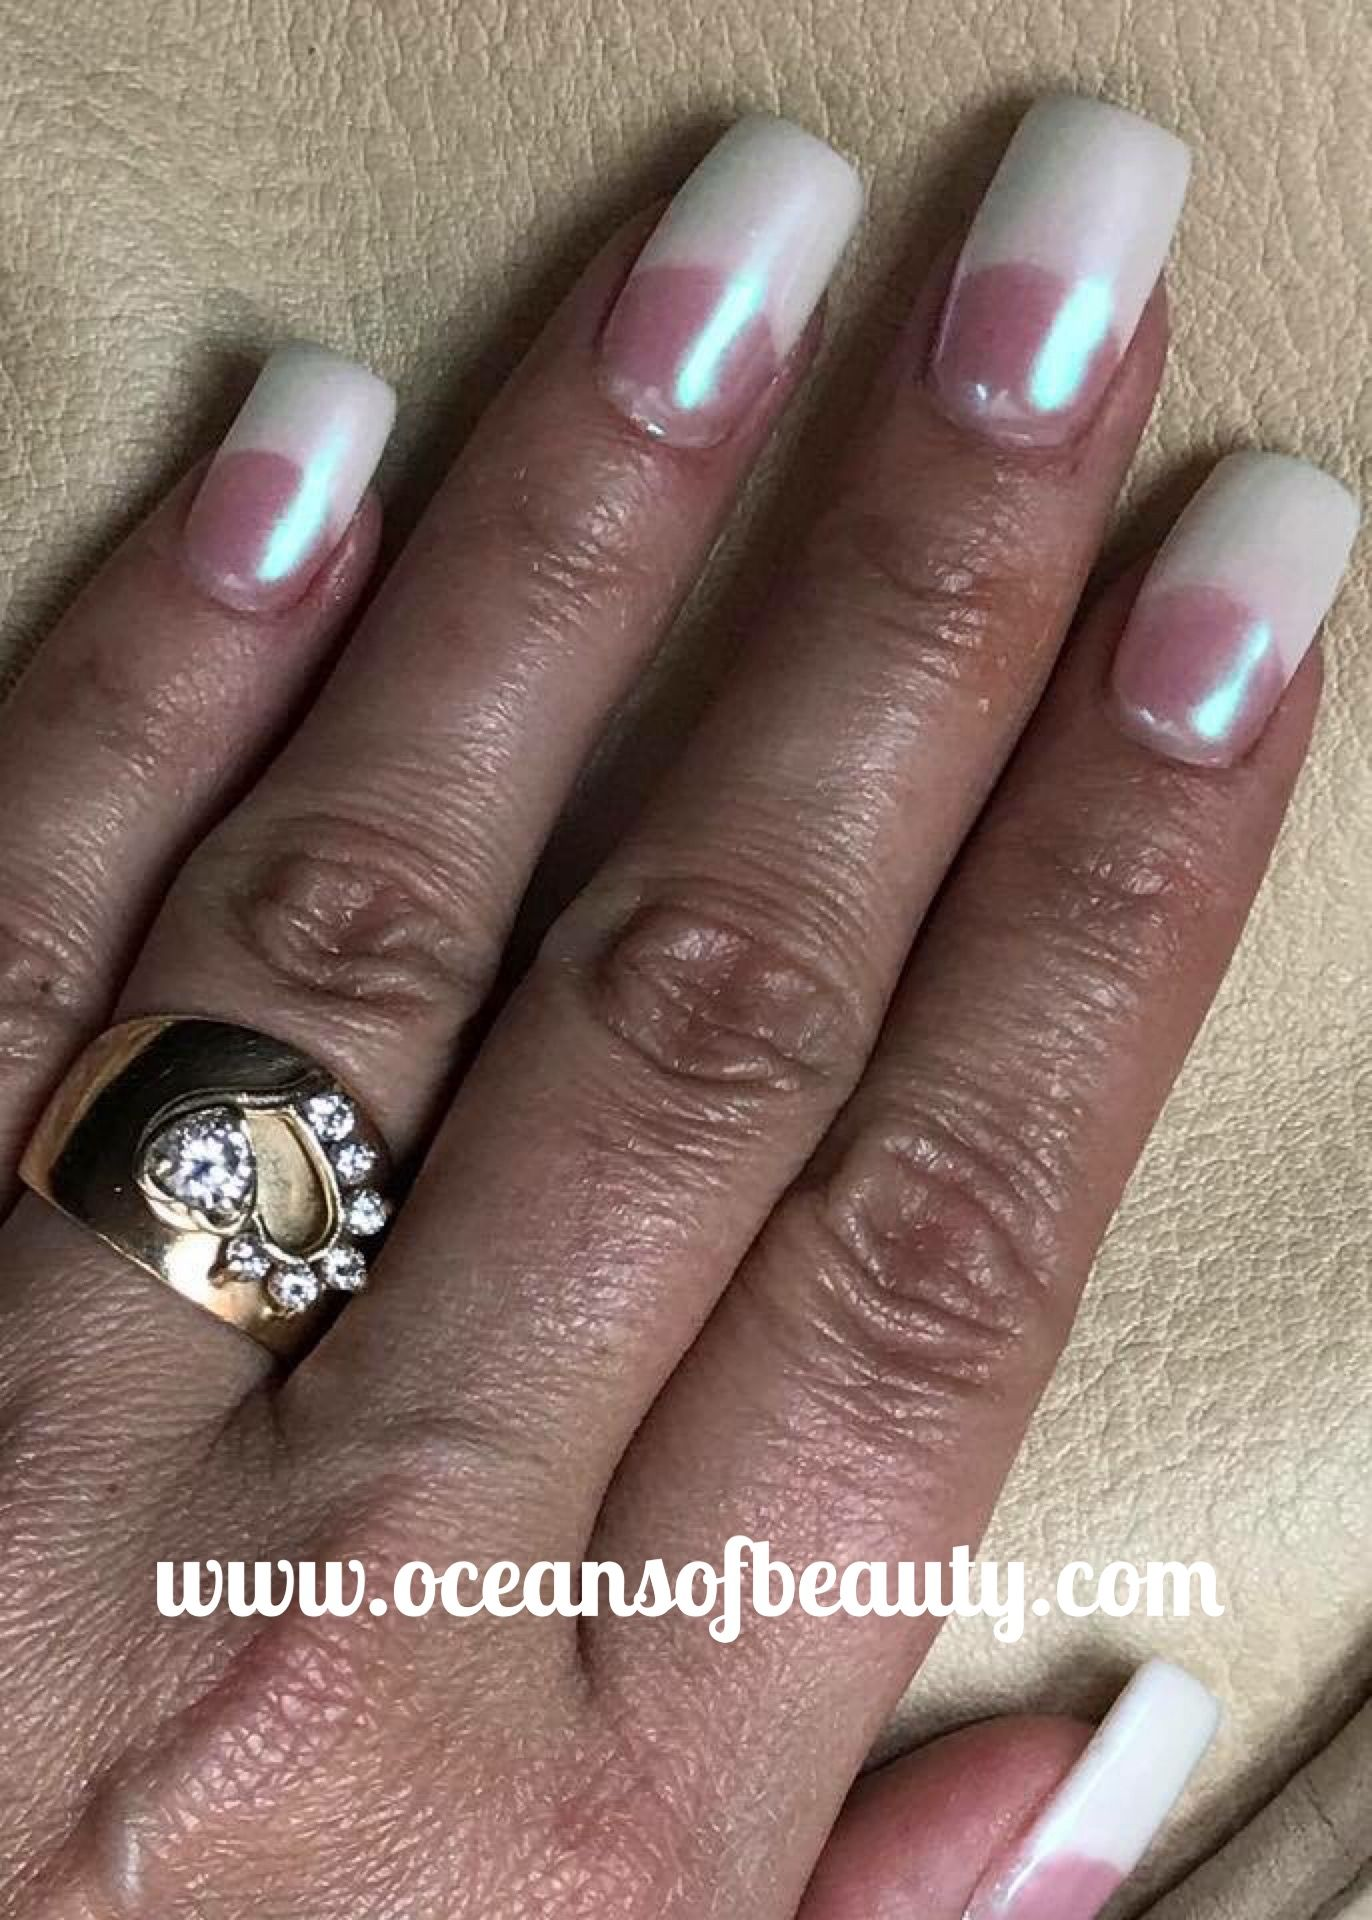 Pin by Sparkle & Co. Luxe Nails on EZ Dip Powder Nails   Pinterest ...